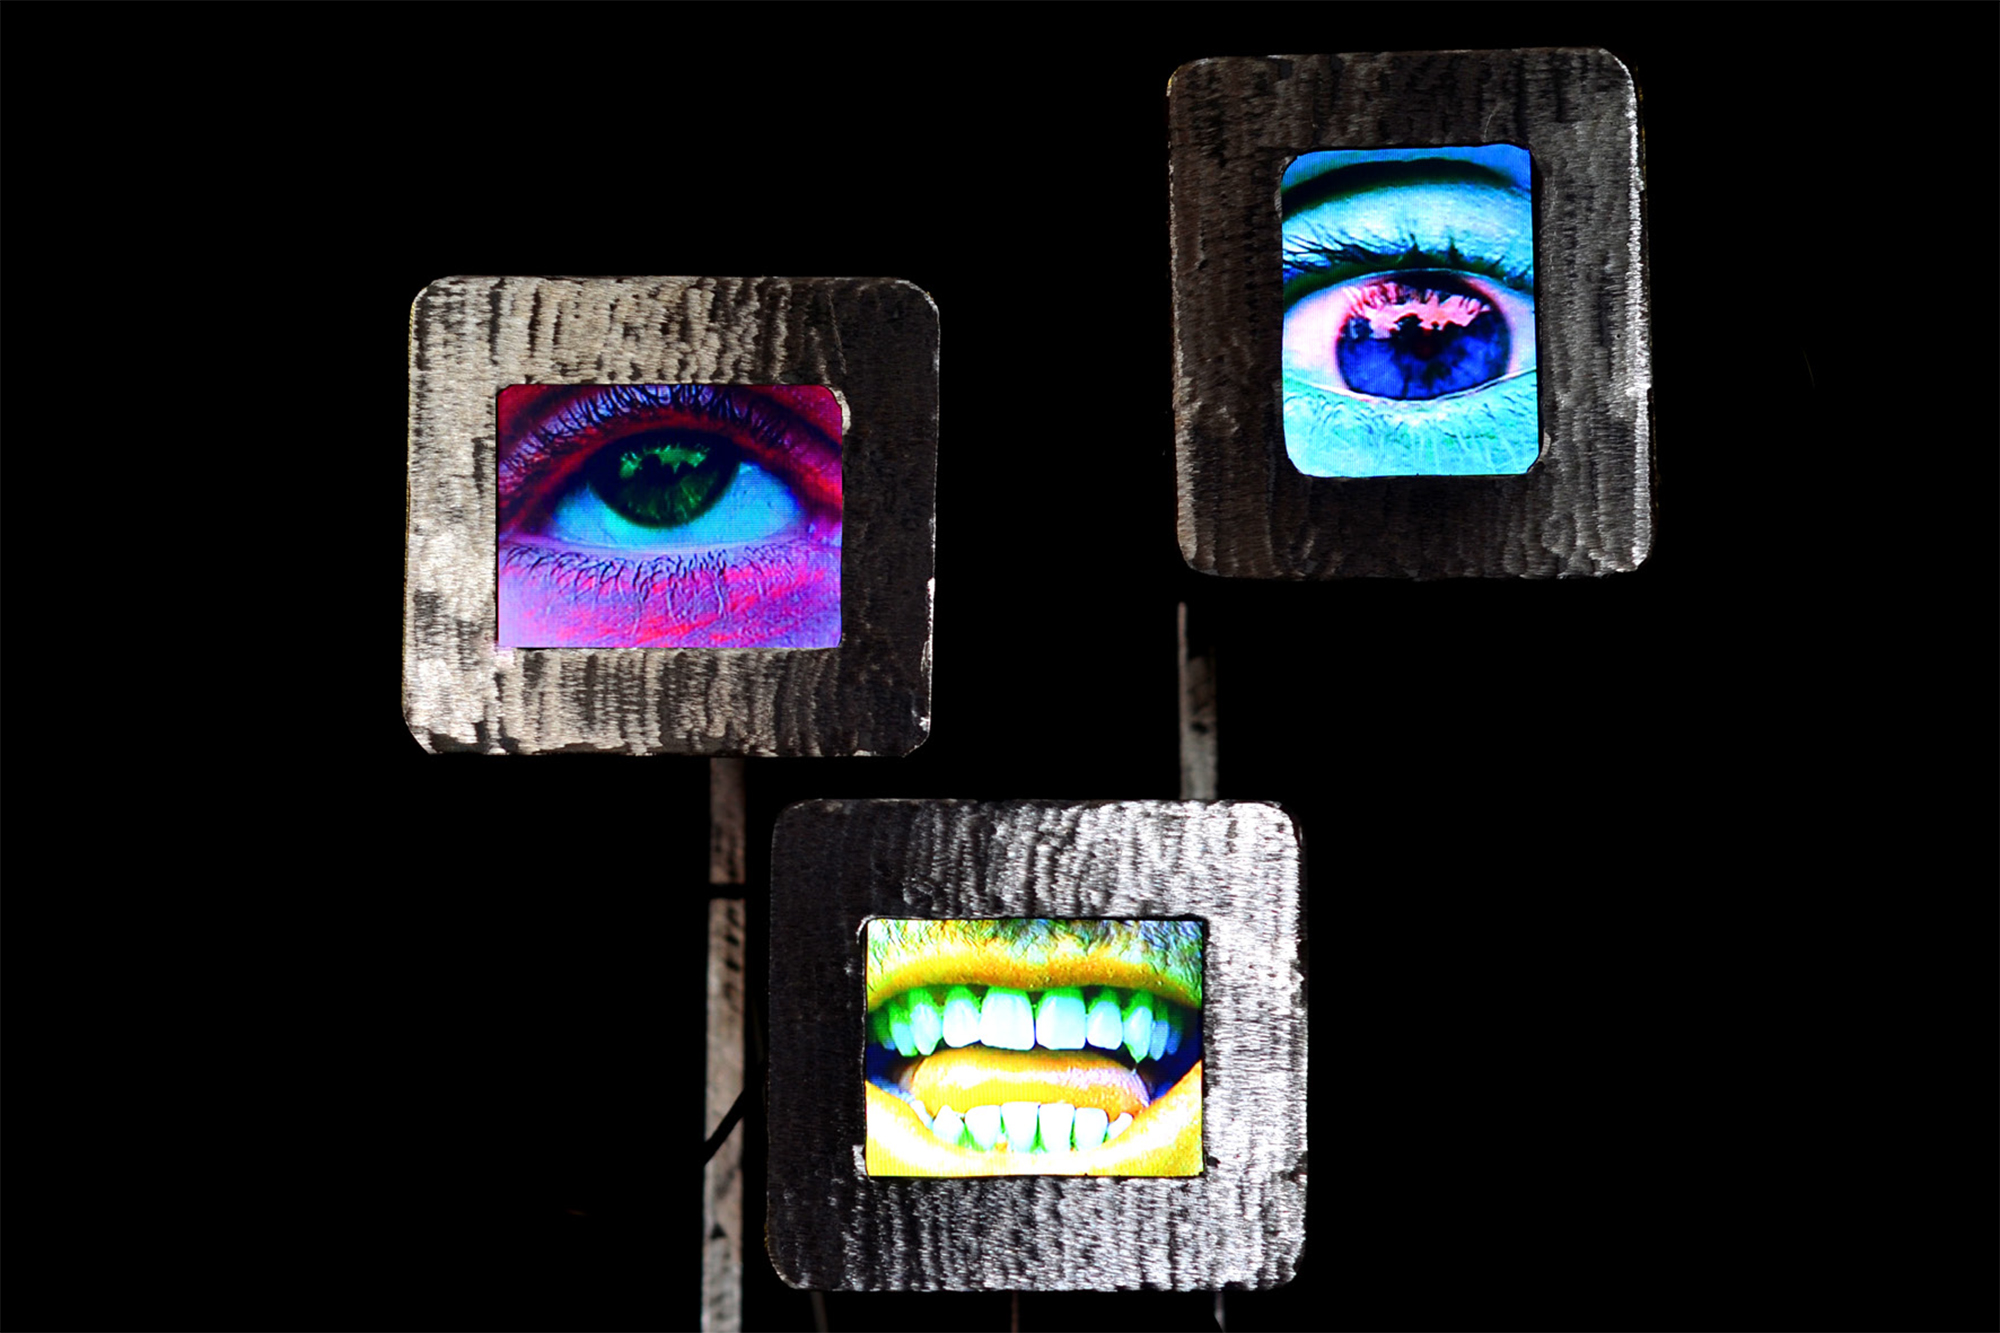 Abstract artwork of a robot with three screens – one with picture of a pink eye, one with picture of a blue eye and one with picture of a yellow mouth on a black background